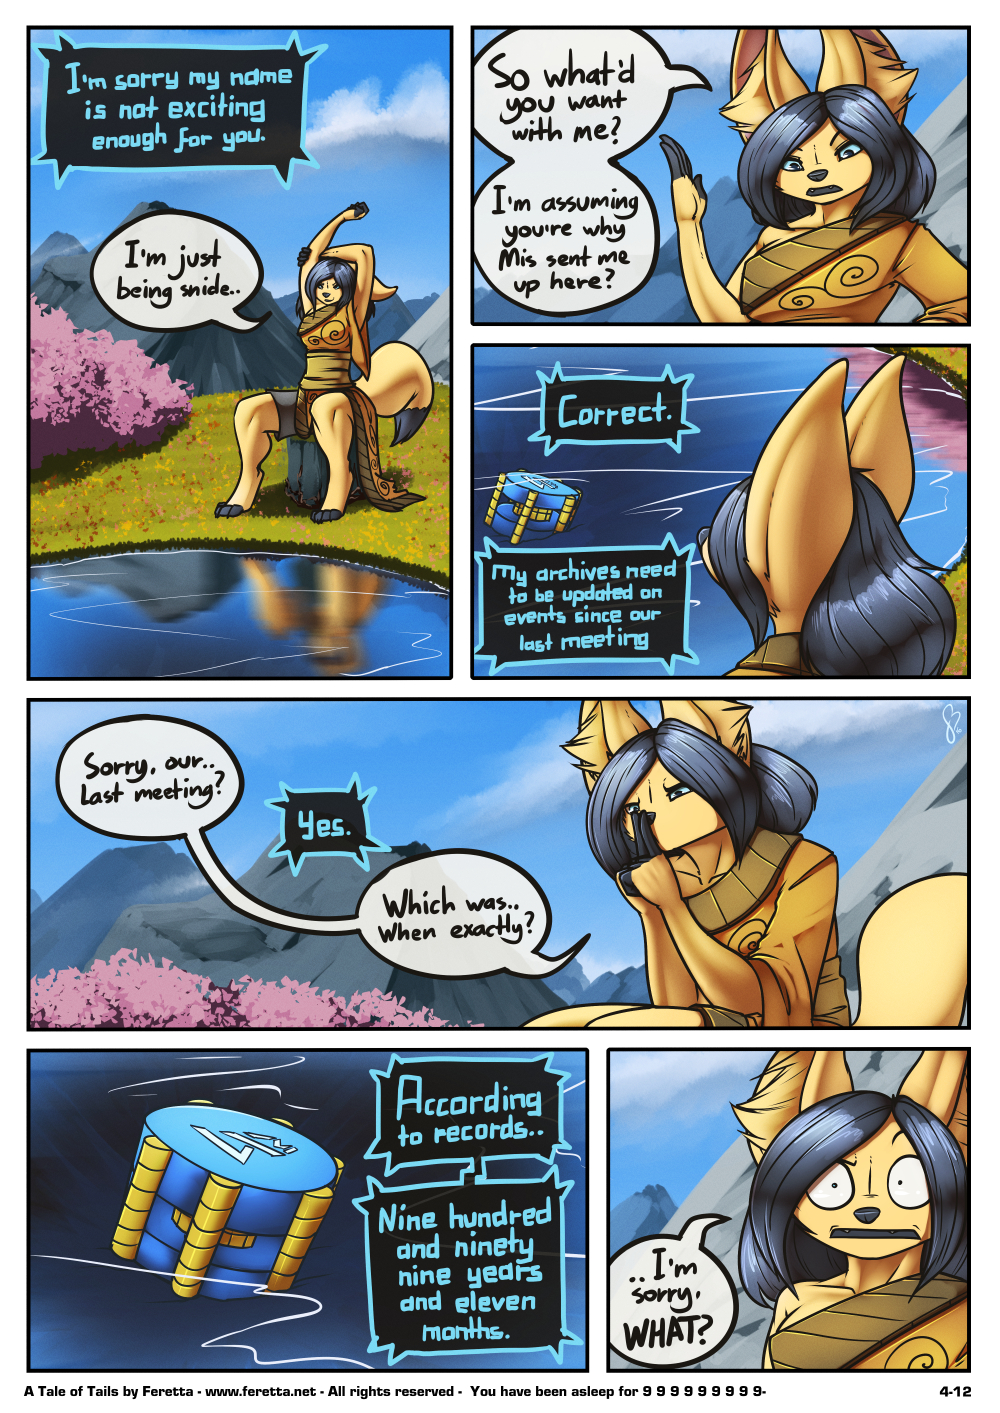 A Tale of Tails, 4-12